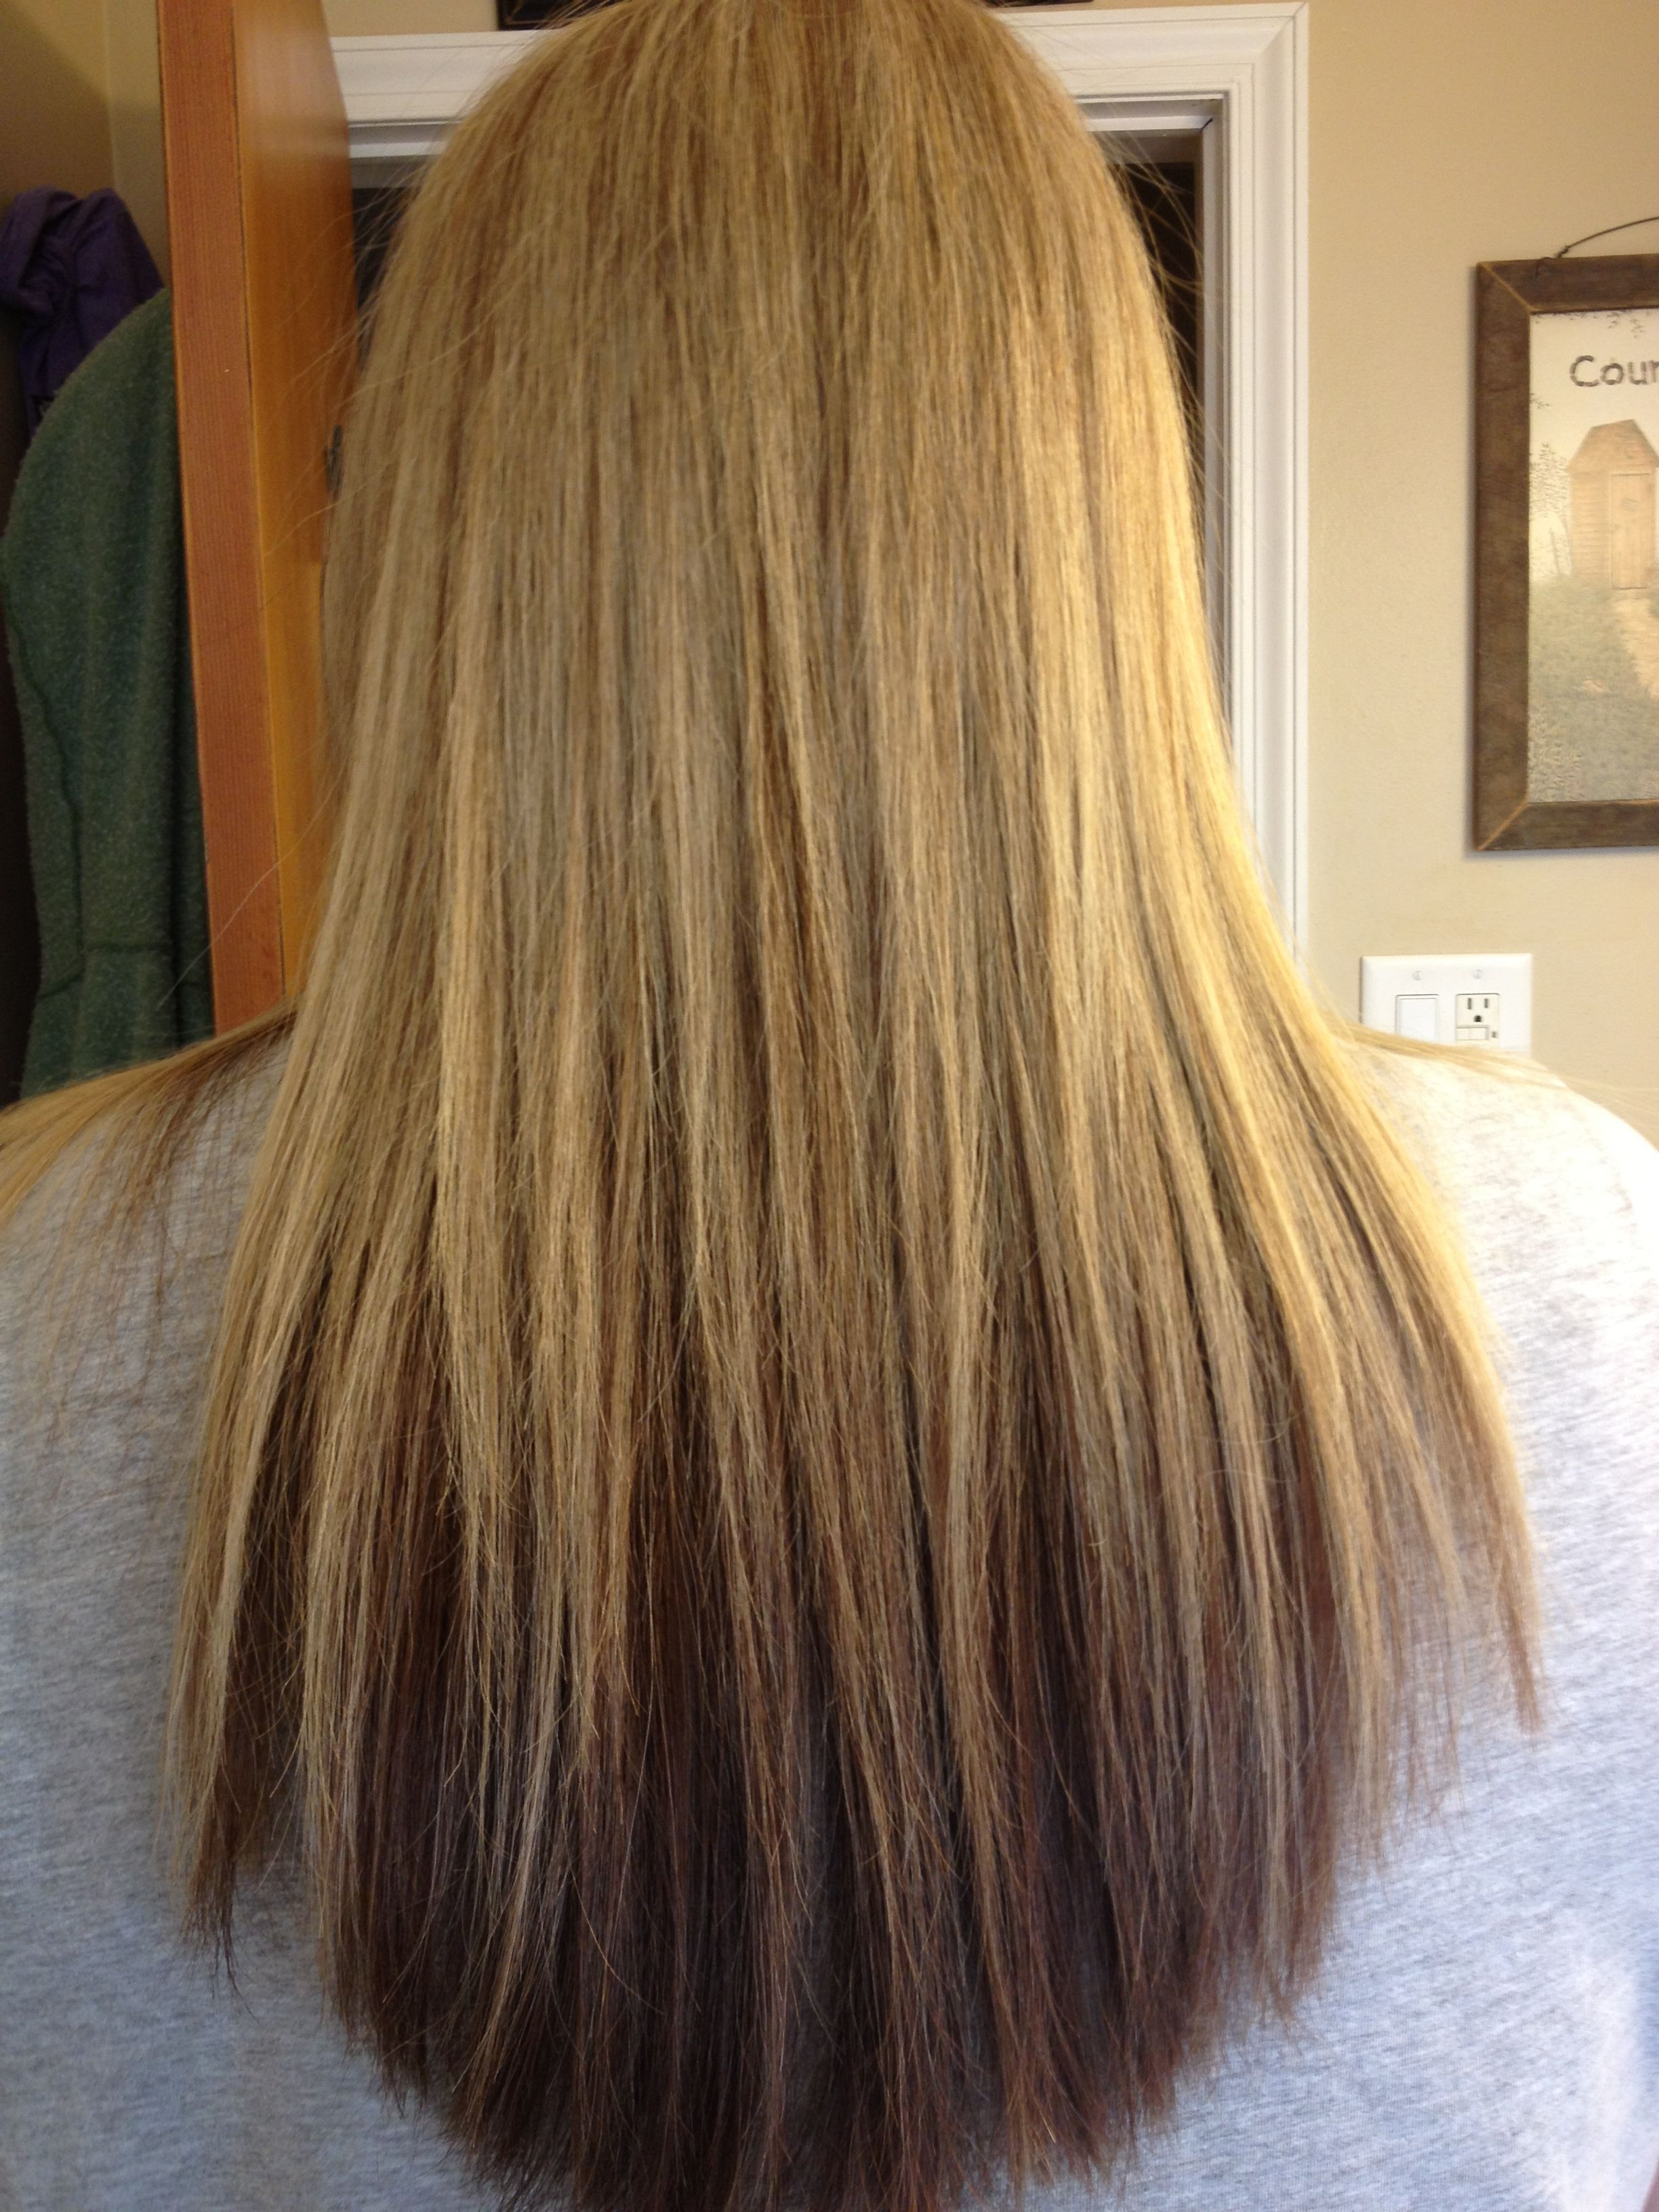 Two Tone Blonde With Darker Underneath Foils Hair Styles Hair